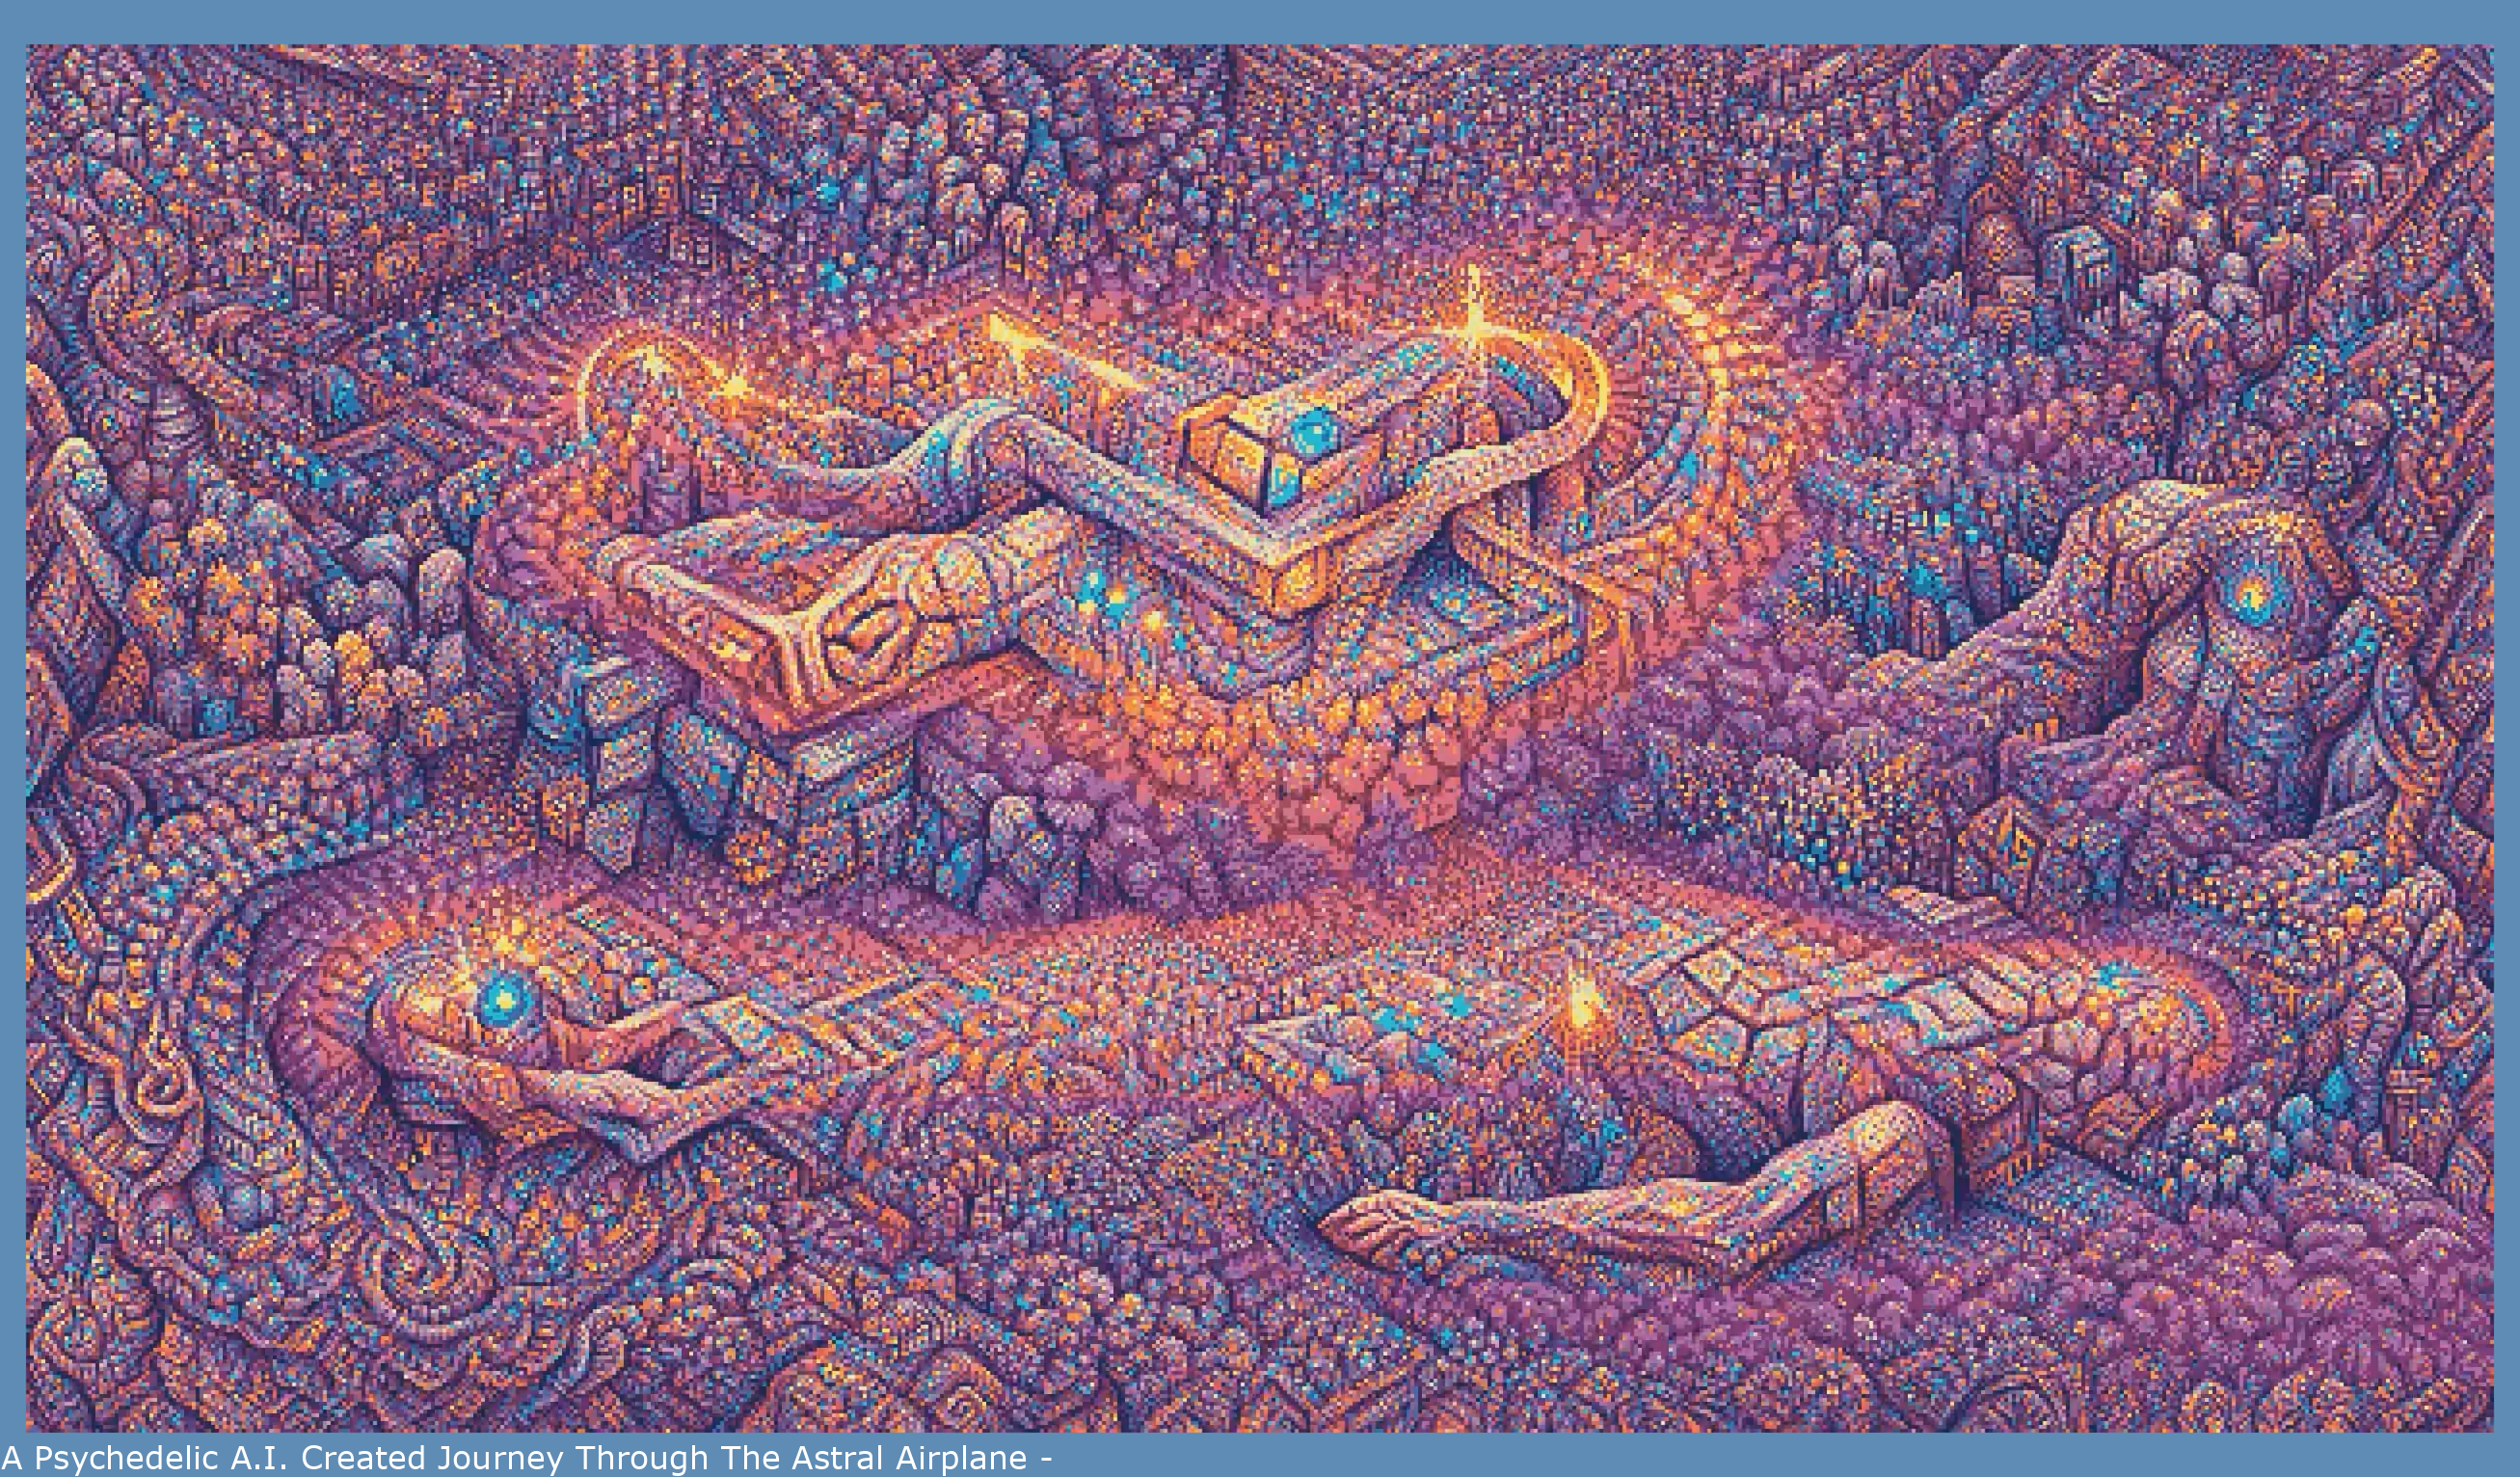 A Psychedelic A.I. Generated Journey Through The Astral Plane